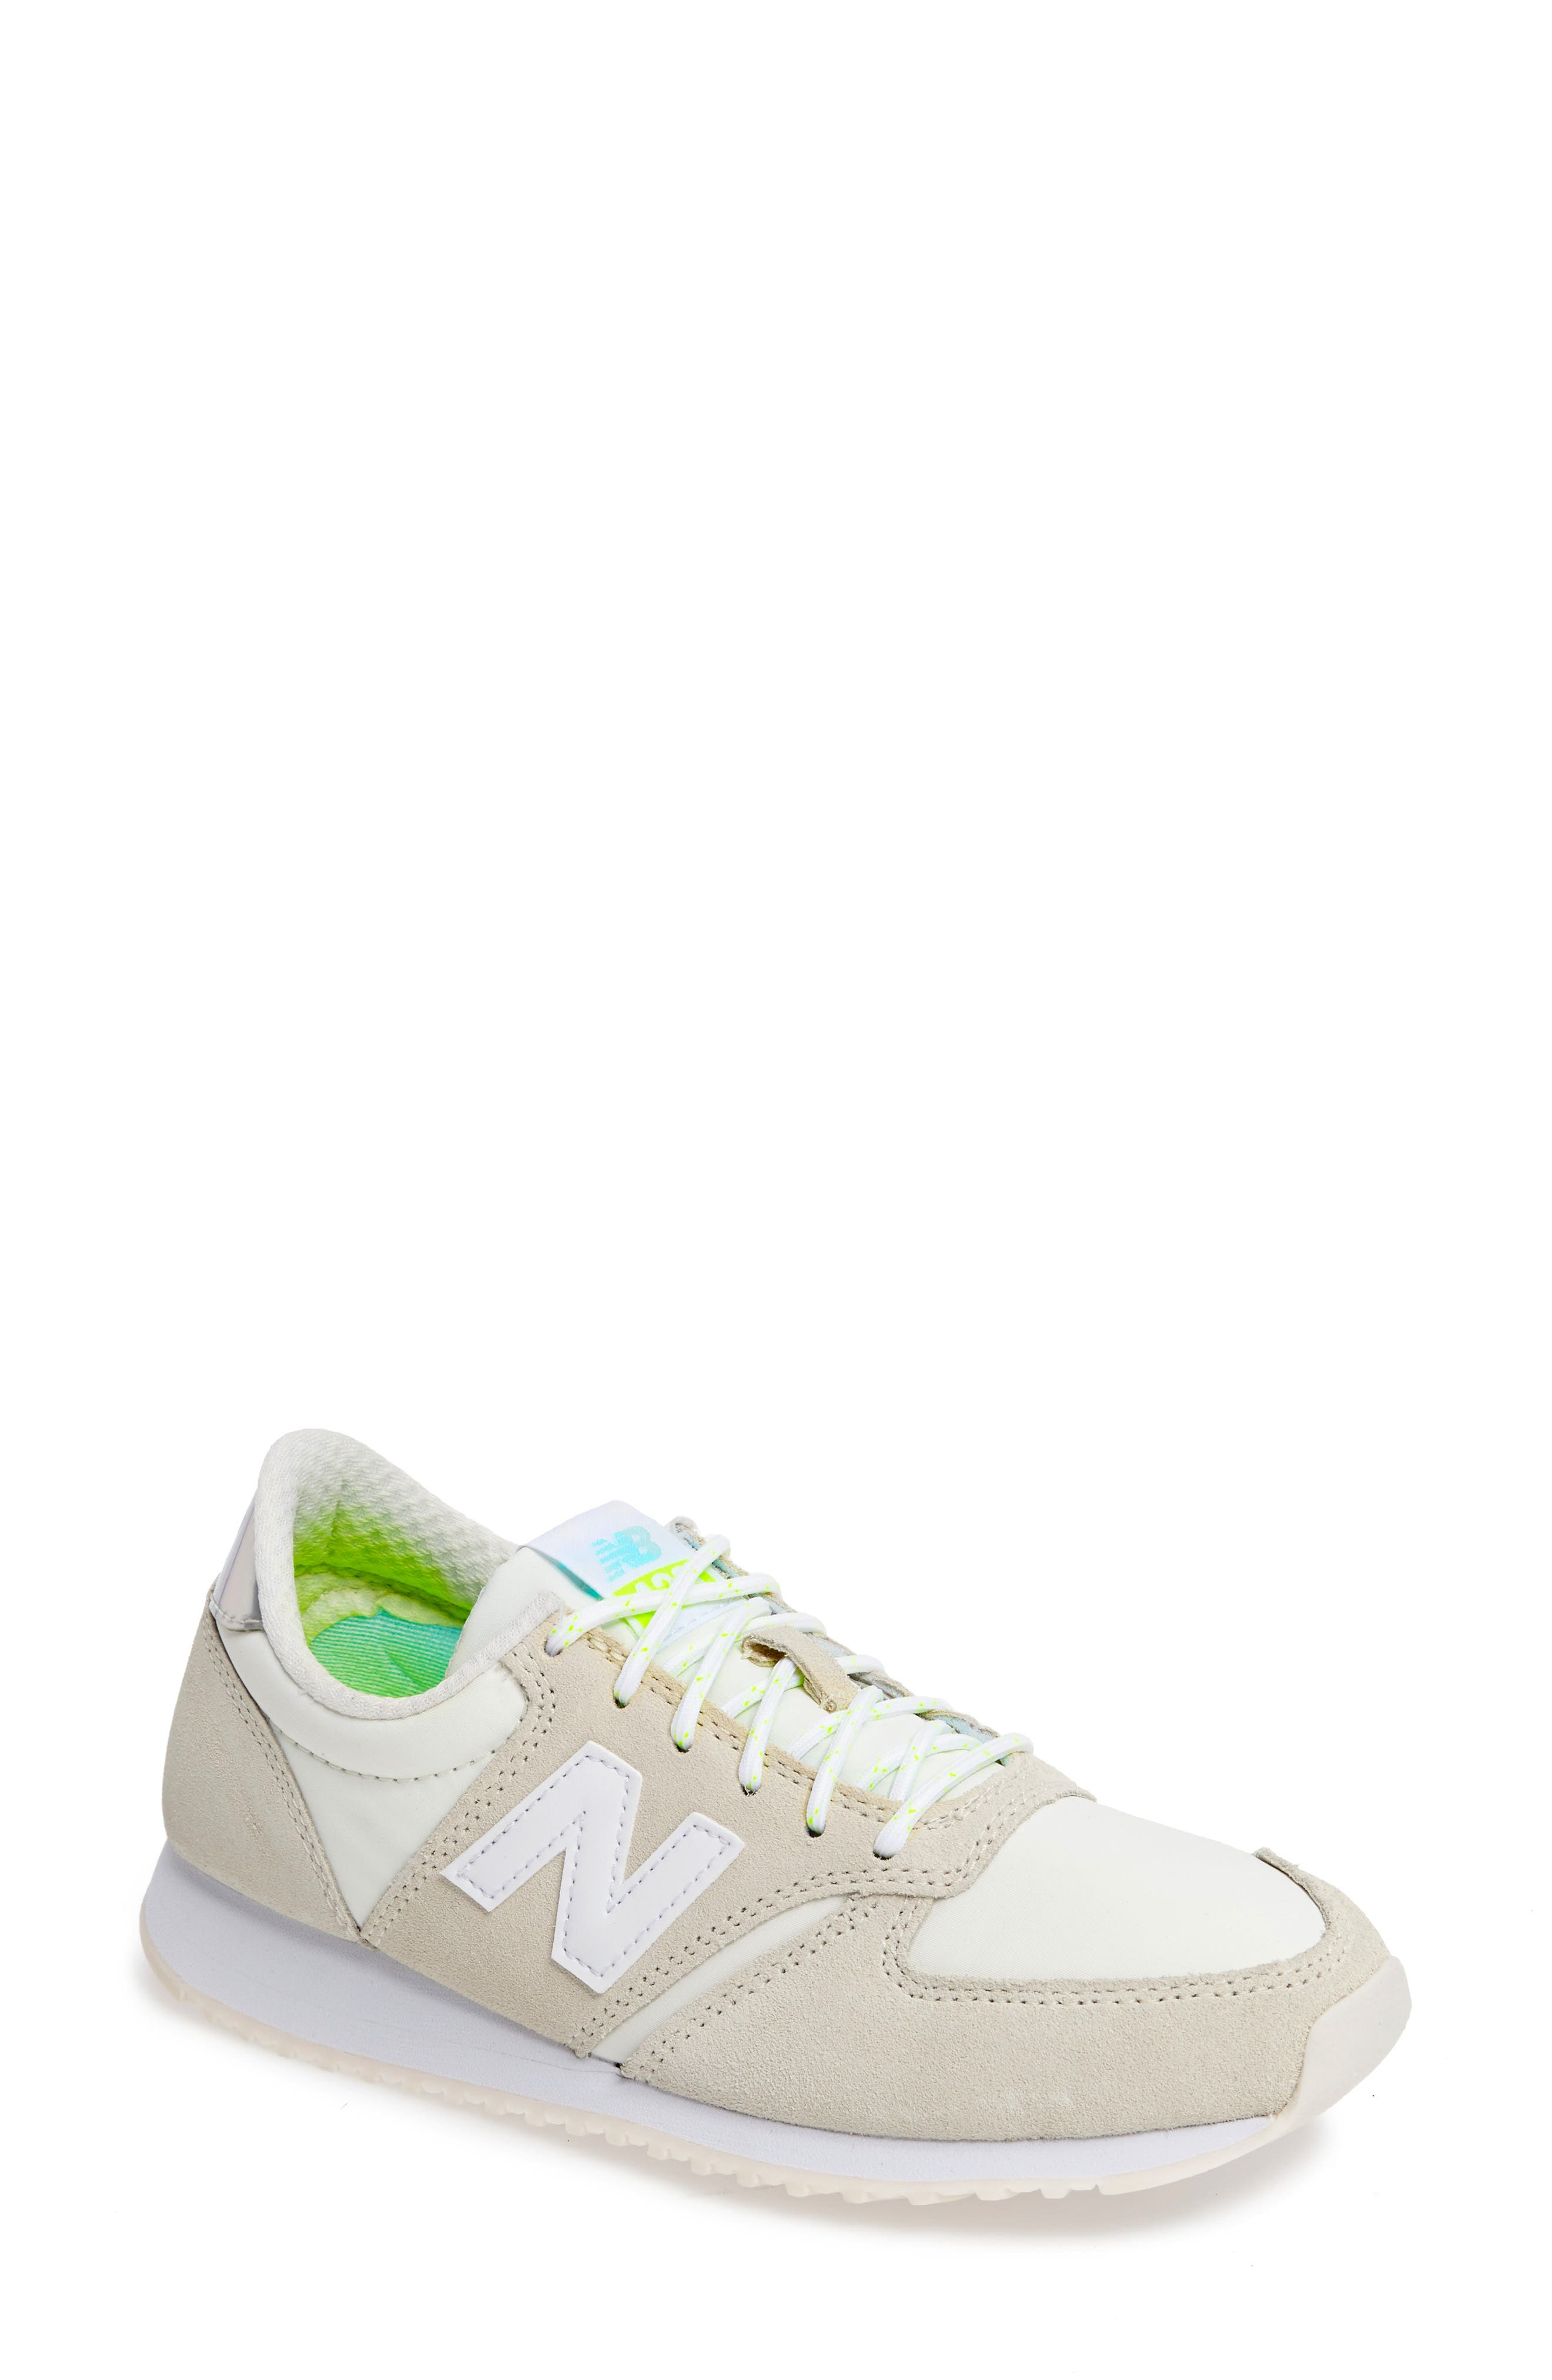 Alternate Image 1 Selected - New Balance '420' Sneaker (Women)